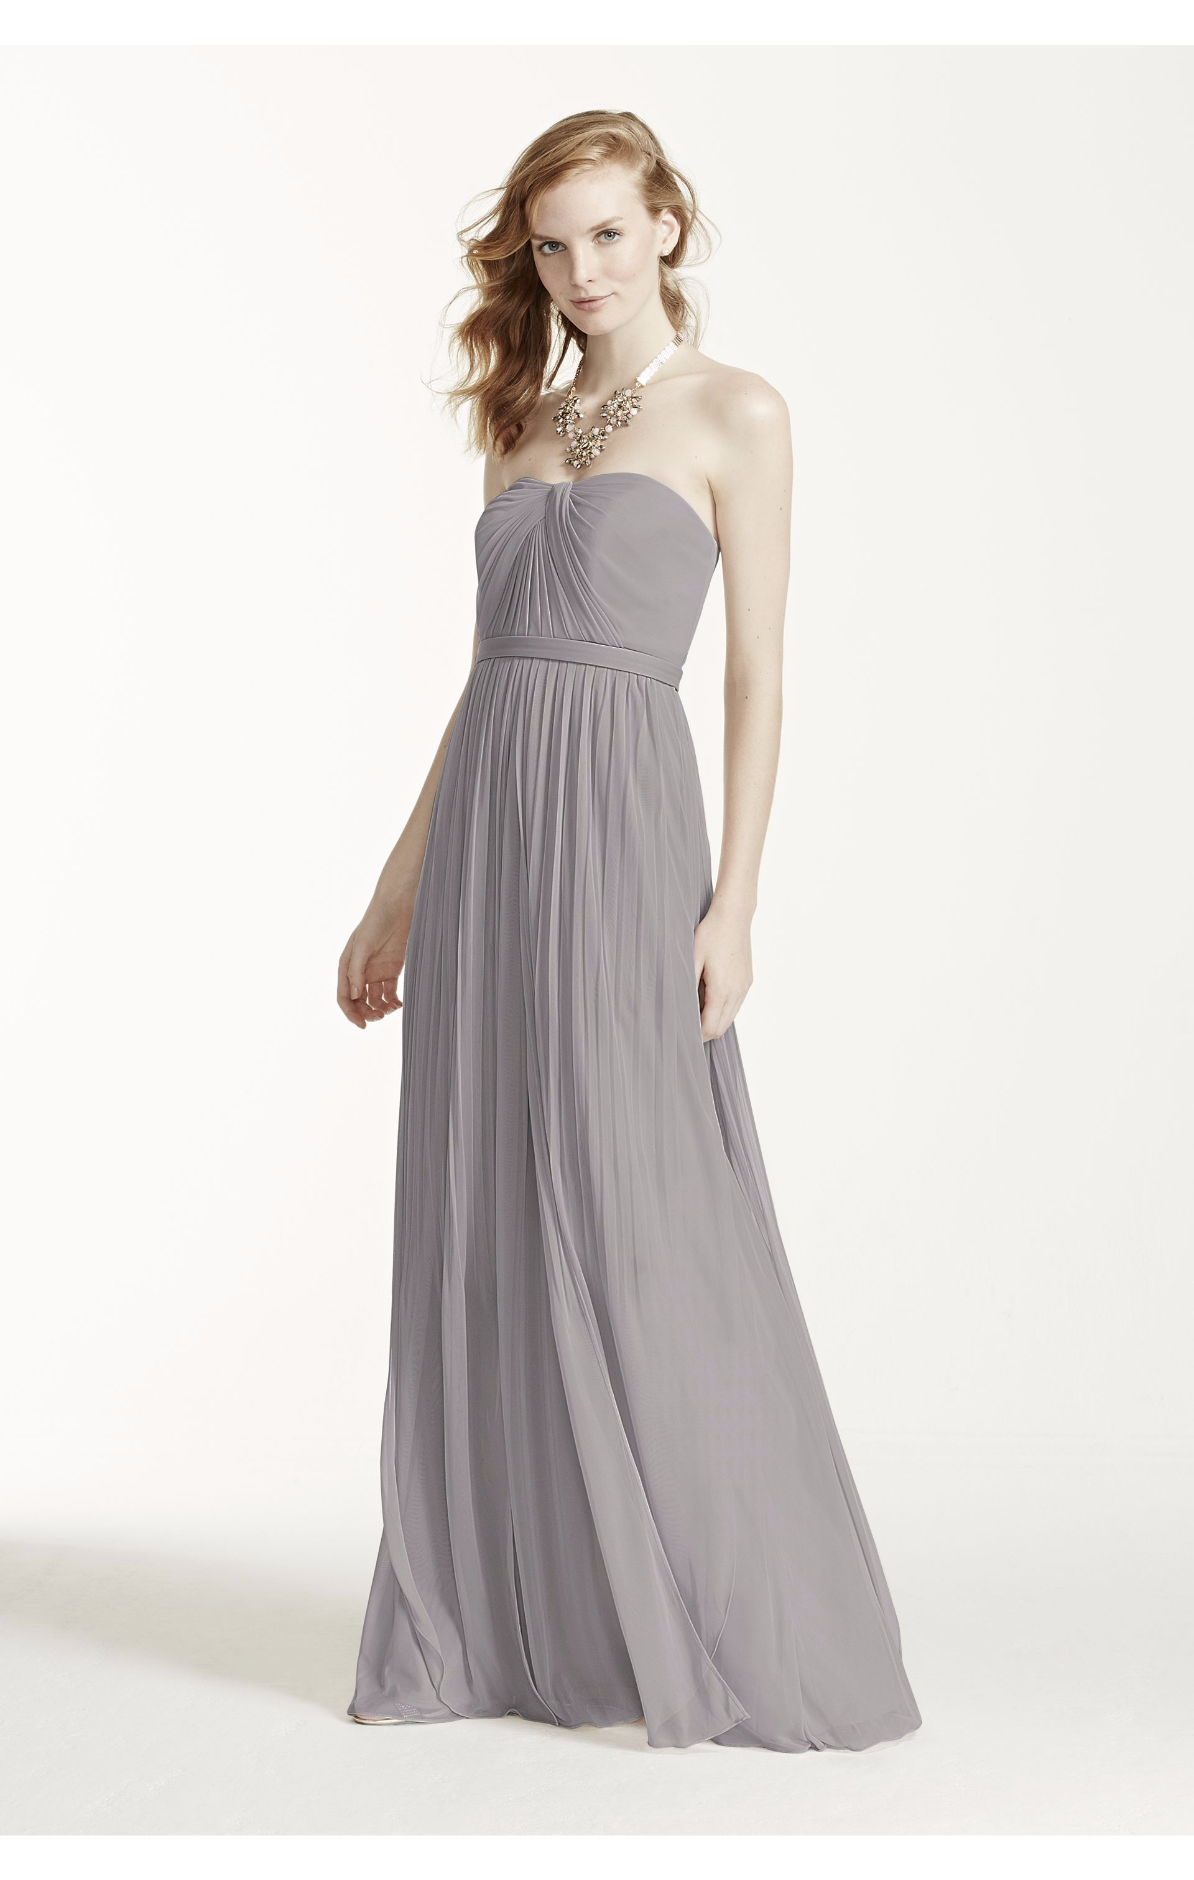 Mercury gray convertible neckline bridesmaids dress amberus maids